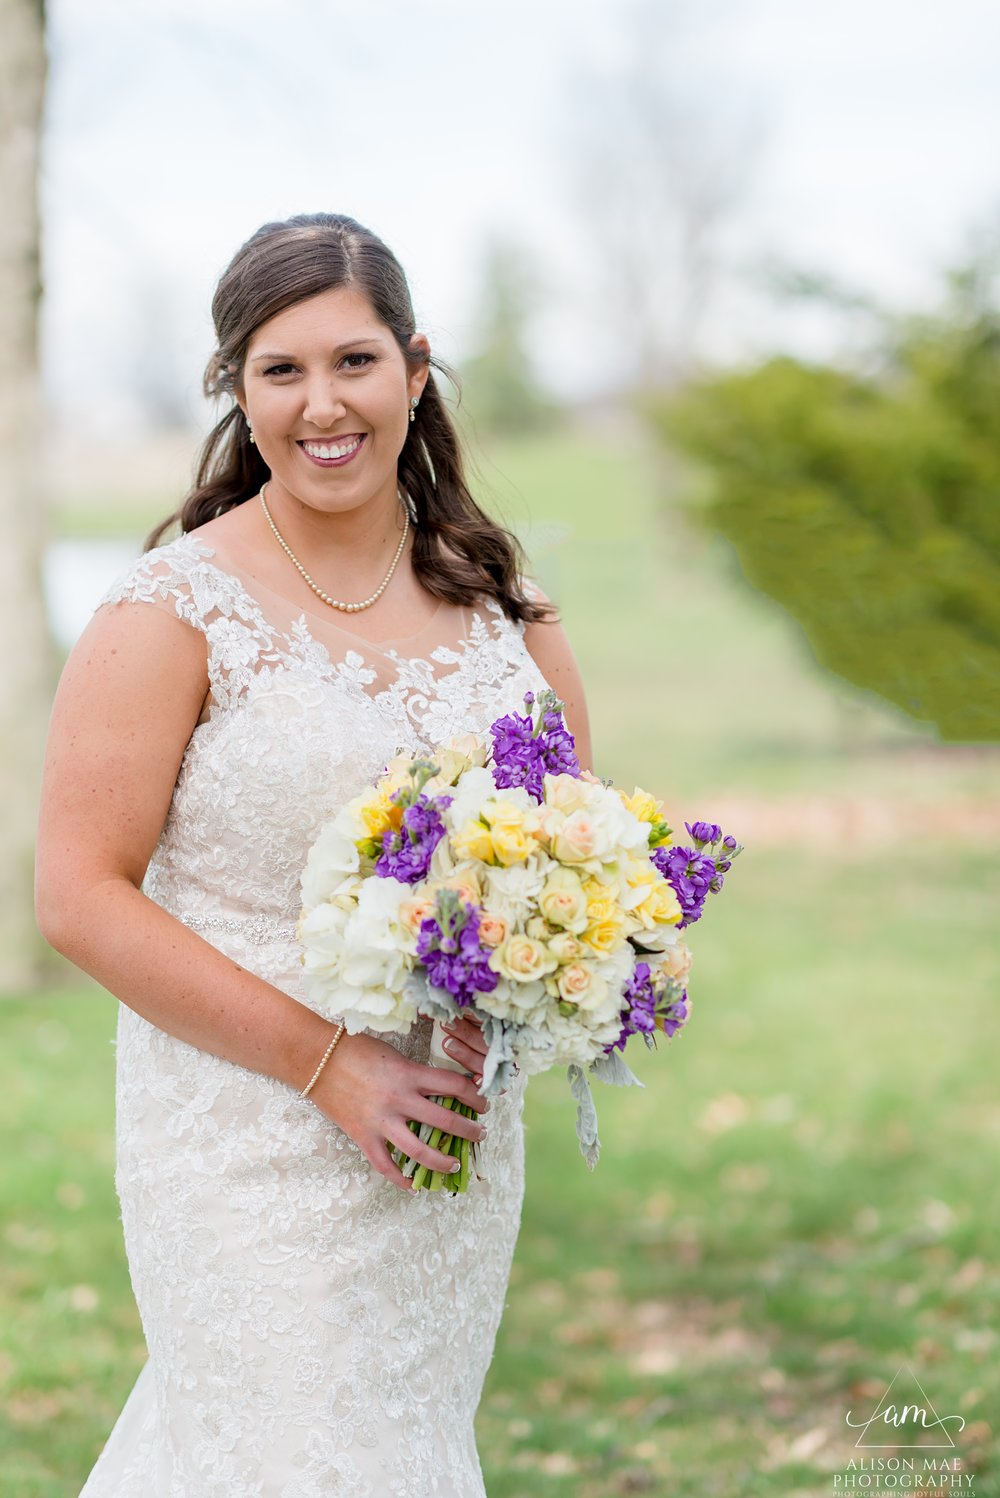 Fun Colorful Joyful Indiana Wedding Photographer - Indianapolis - Alison Mae Photography_4485.jpg